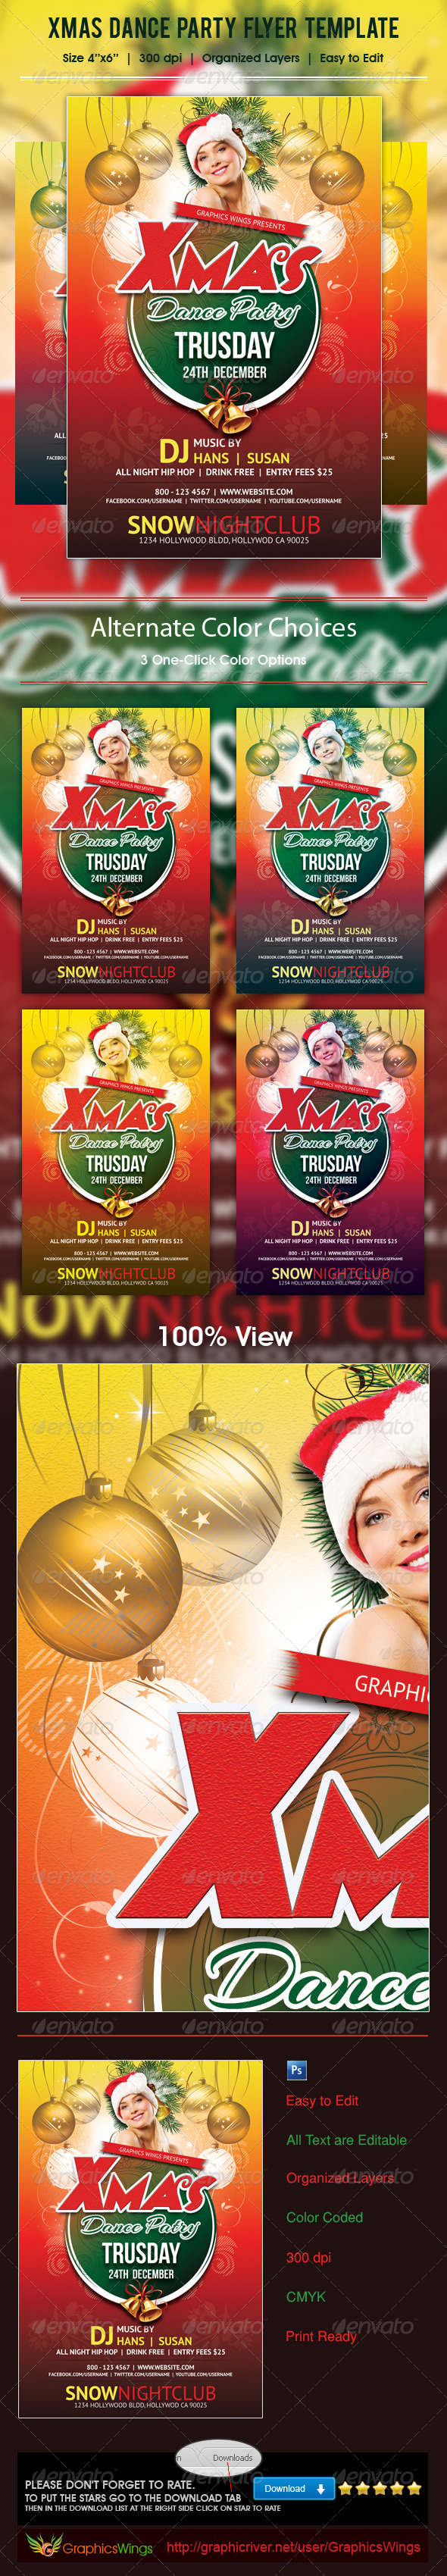 Xmas Dance Party Flyer Template - Clubs & Parties Events